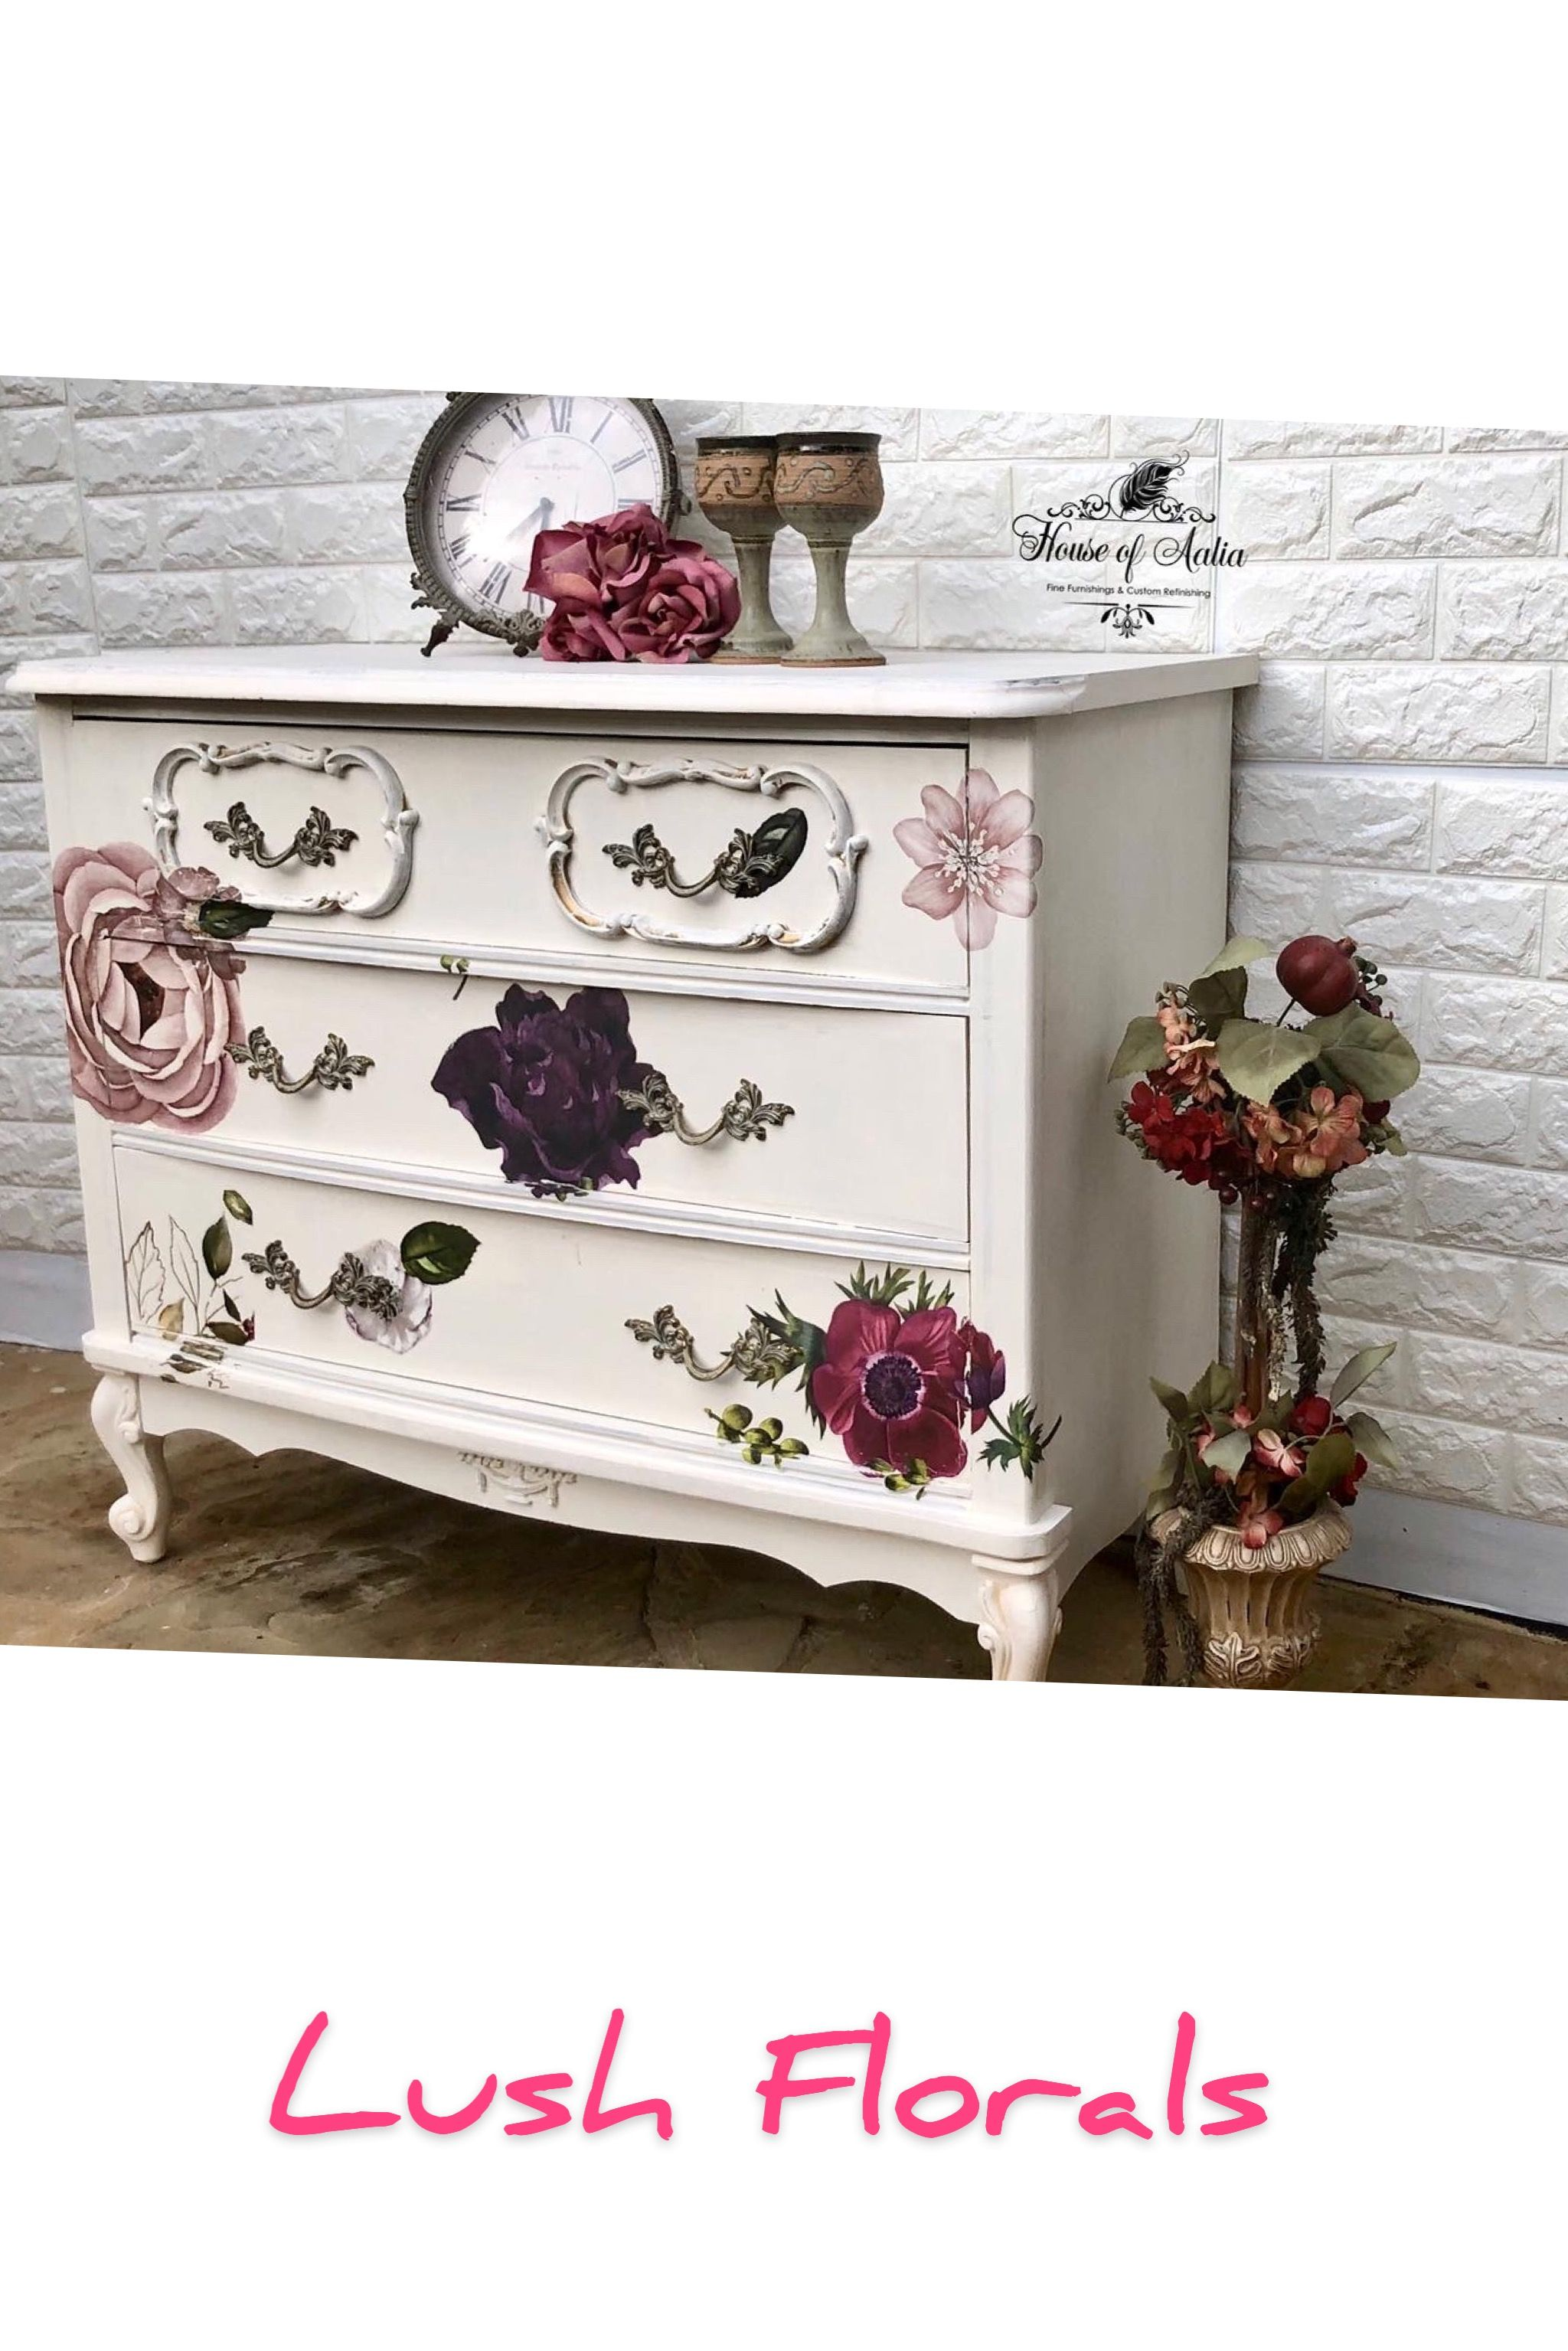 White French Country Dresser French Country Dressers Living Room Side Table Painted Furniture [ 3070 x 2048 Pixel ]